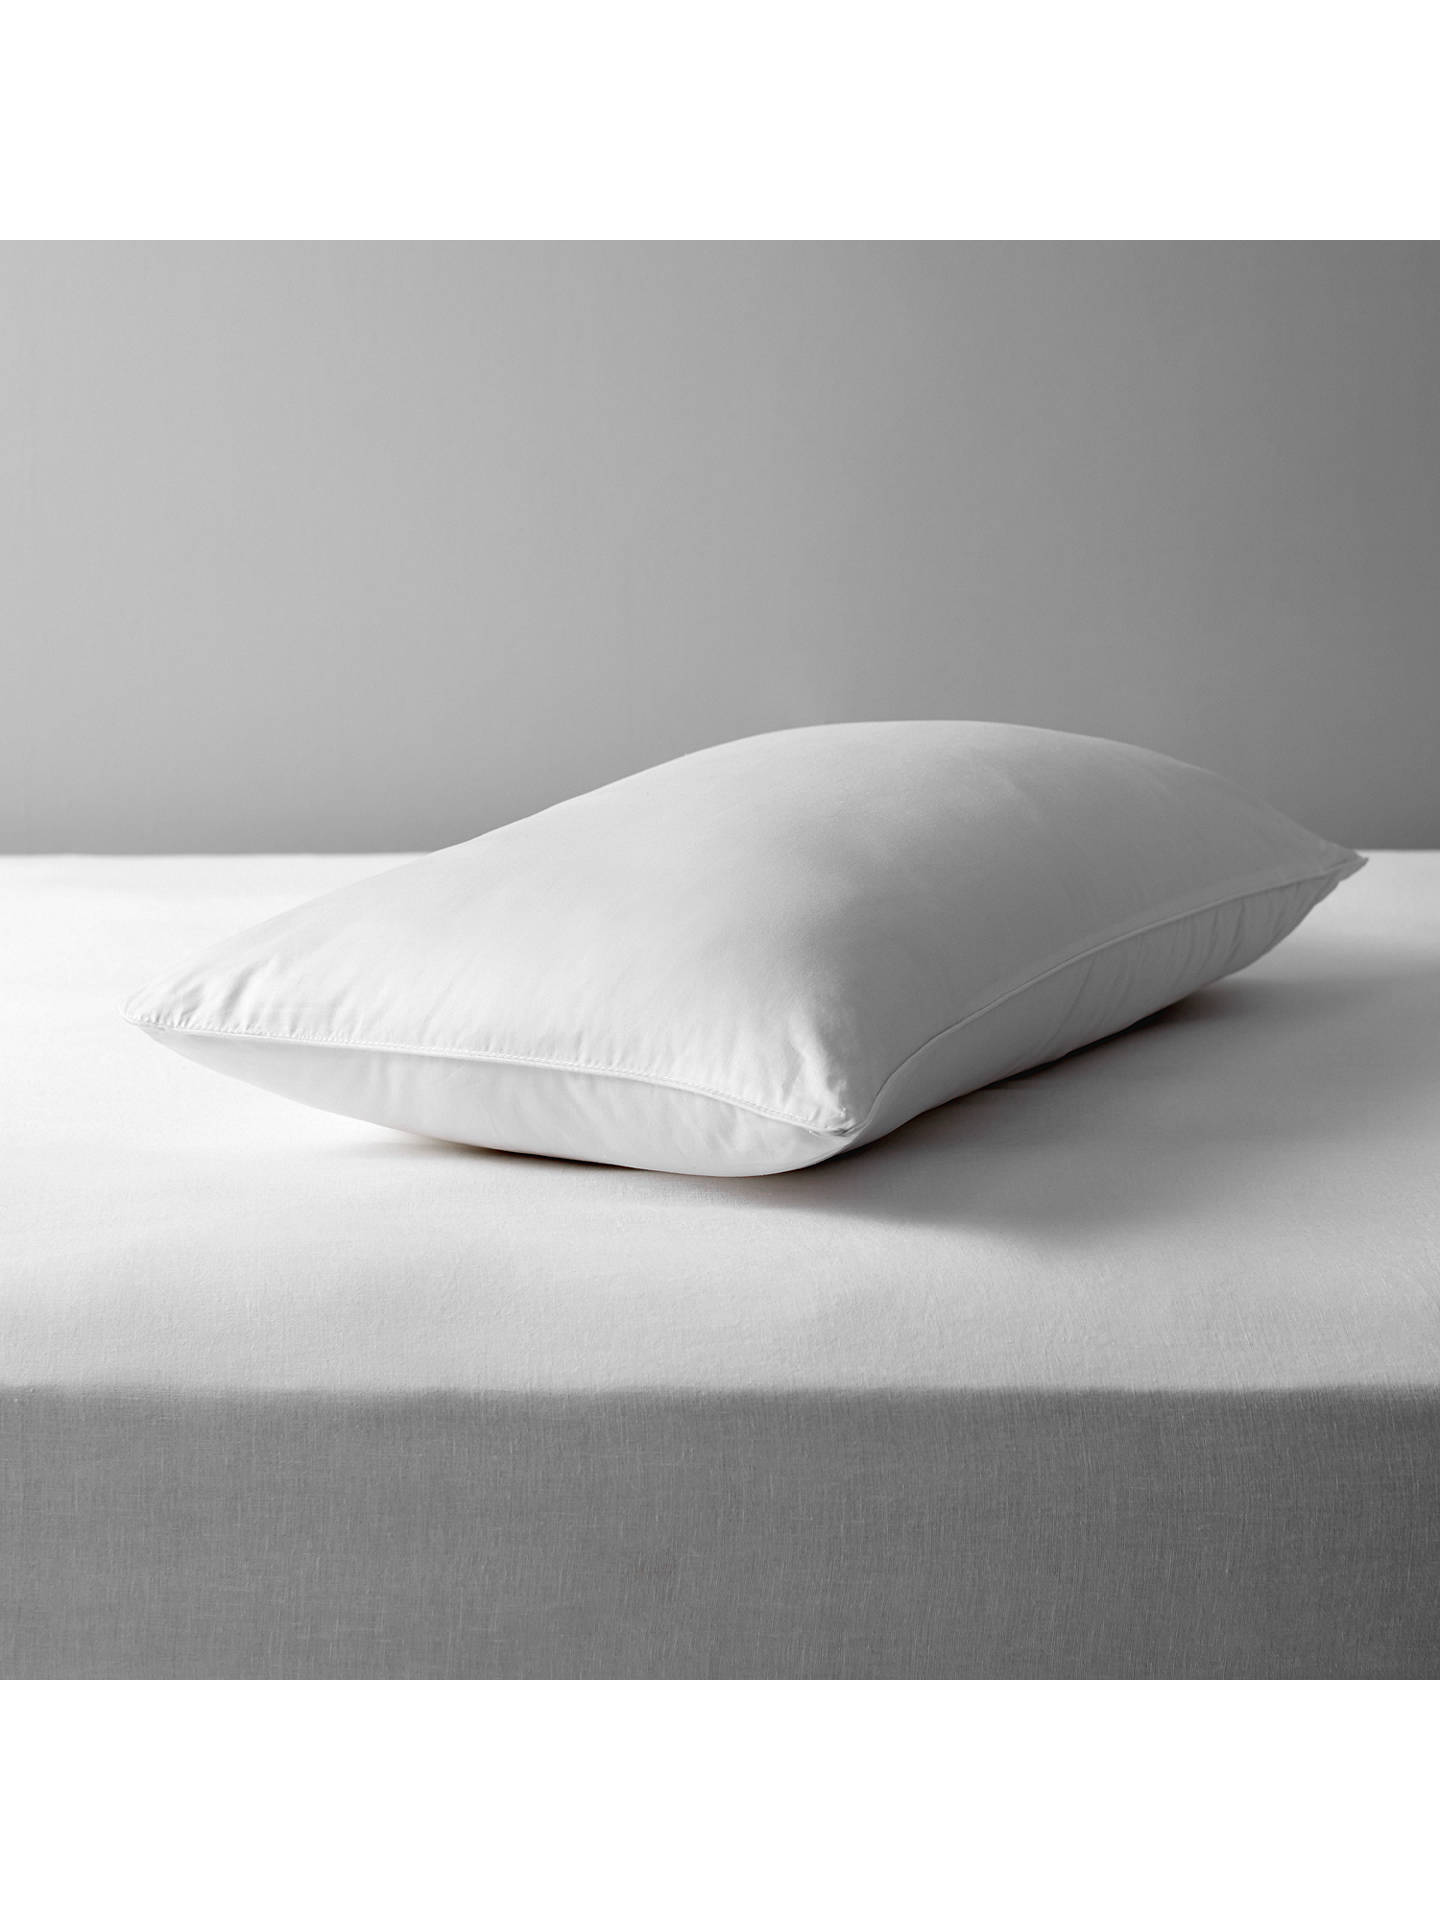 BuyJohn Lewis & Partners Natural Collection Mulberry Silk Blend Standard Pillow, Medium/Firm Online at johnlewis.com